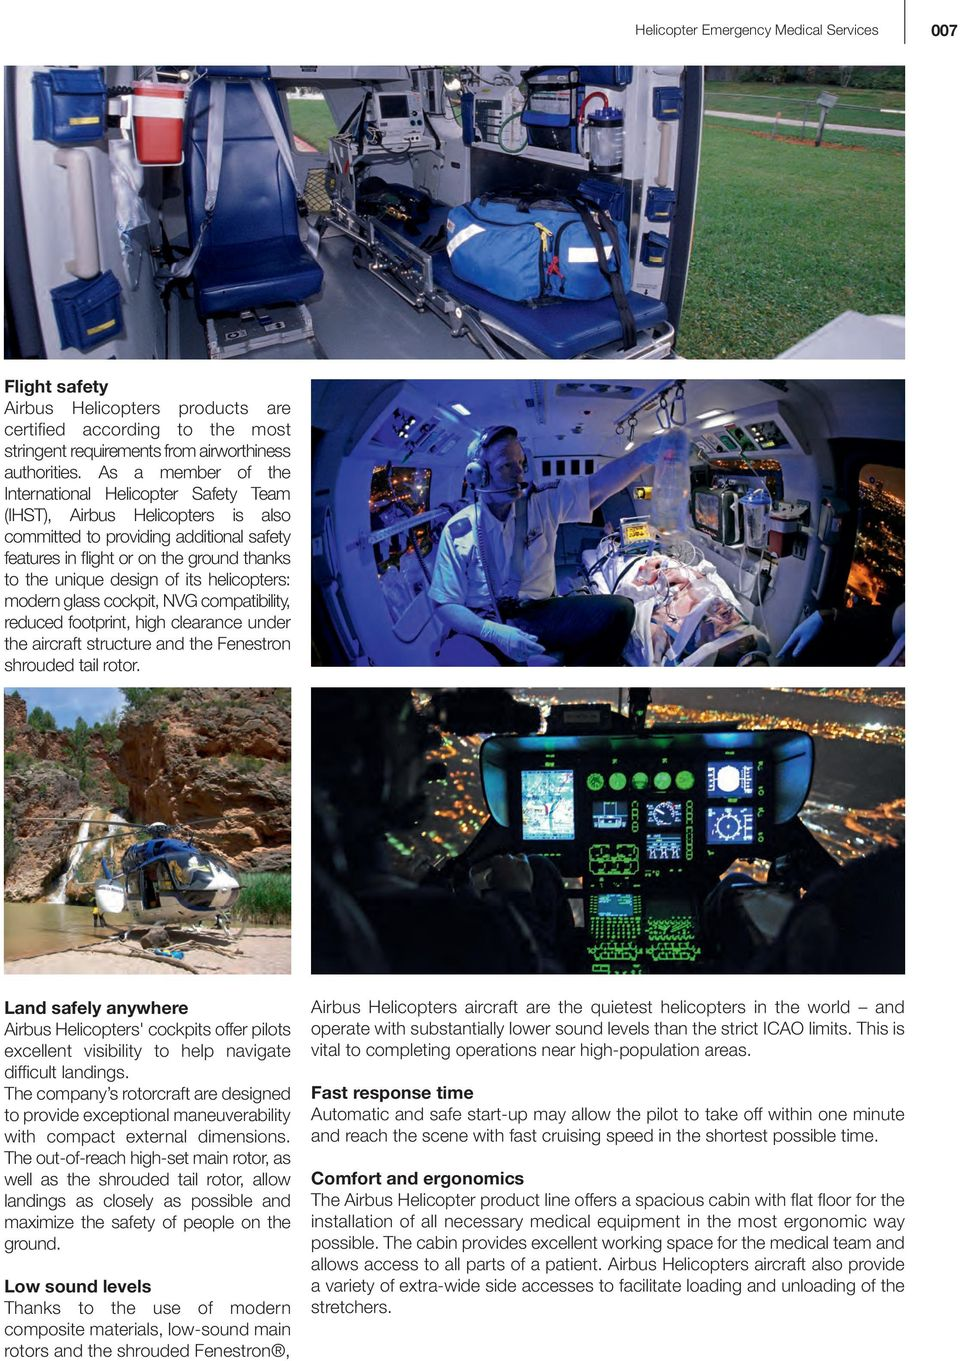 its helicopters: modern glass cockpit, NVG compatibility, reduced footprint, high clearance under the aircraft structure and the Fenestron shrouded tail rotor.